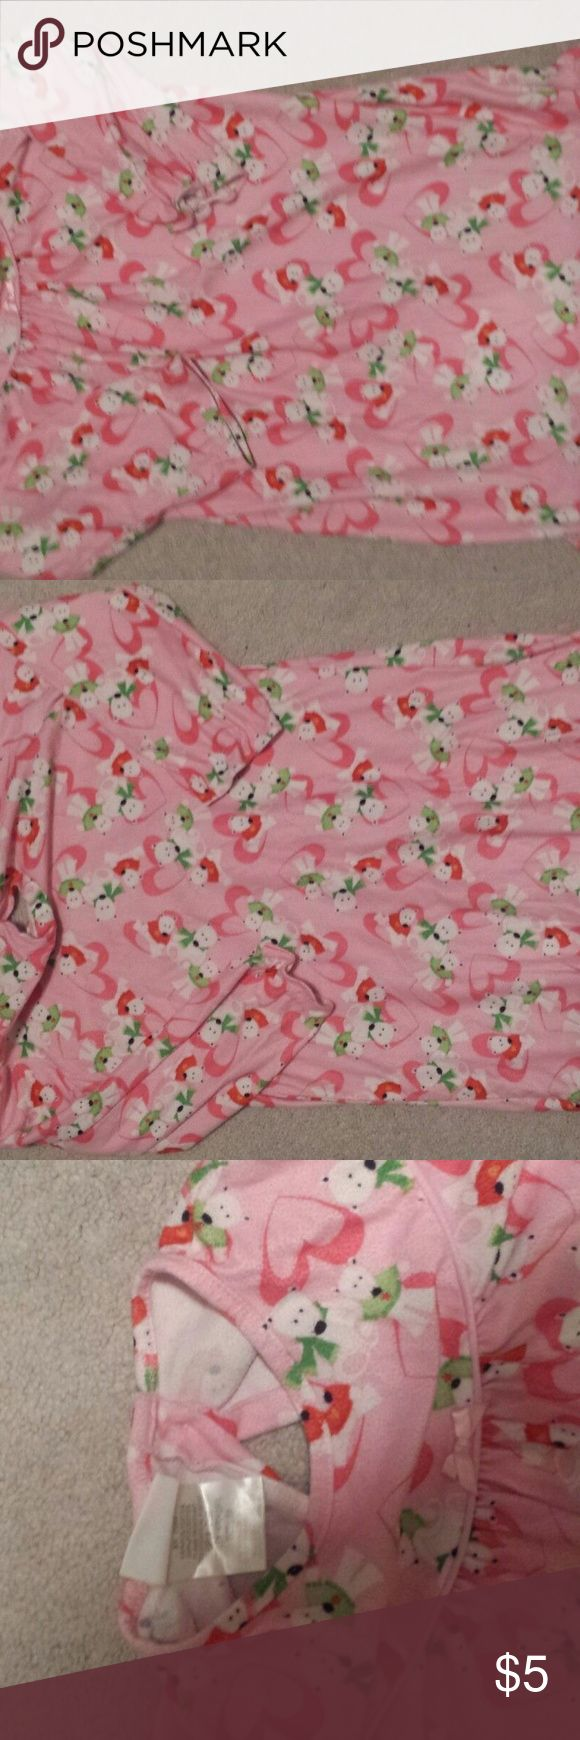 Girls sleepwear Pillow Pals girls Sleepwear- Excellent condition- Very Gently Used Coming from a smoke free home Beautiful Pink design that your girl will absolutely love! 100% Polyester Pillow Pals Pajamas Nightgowns